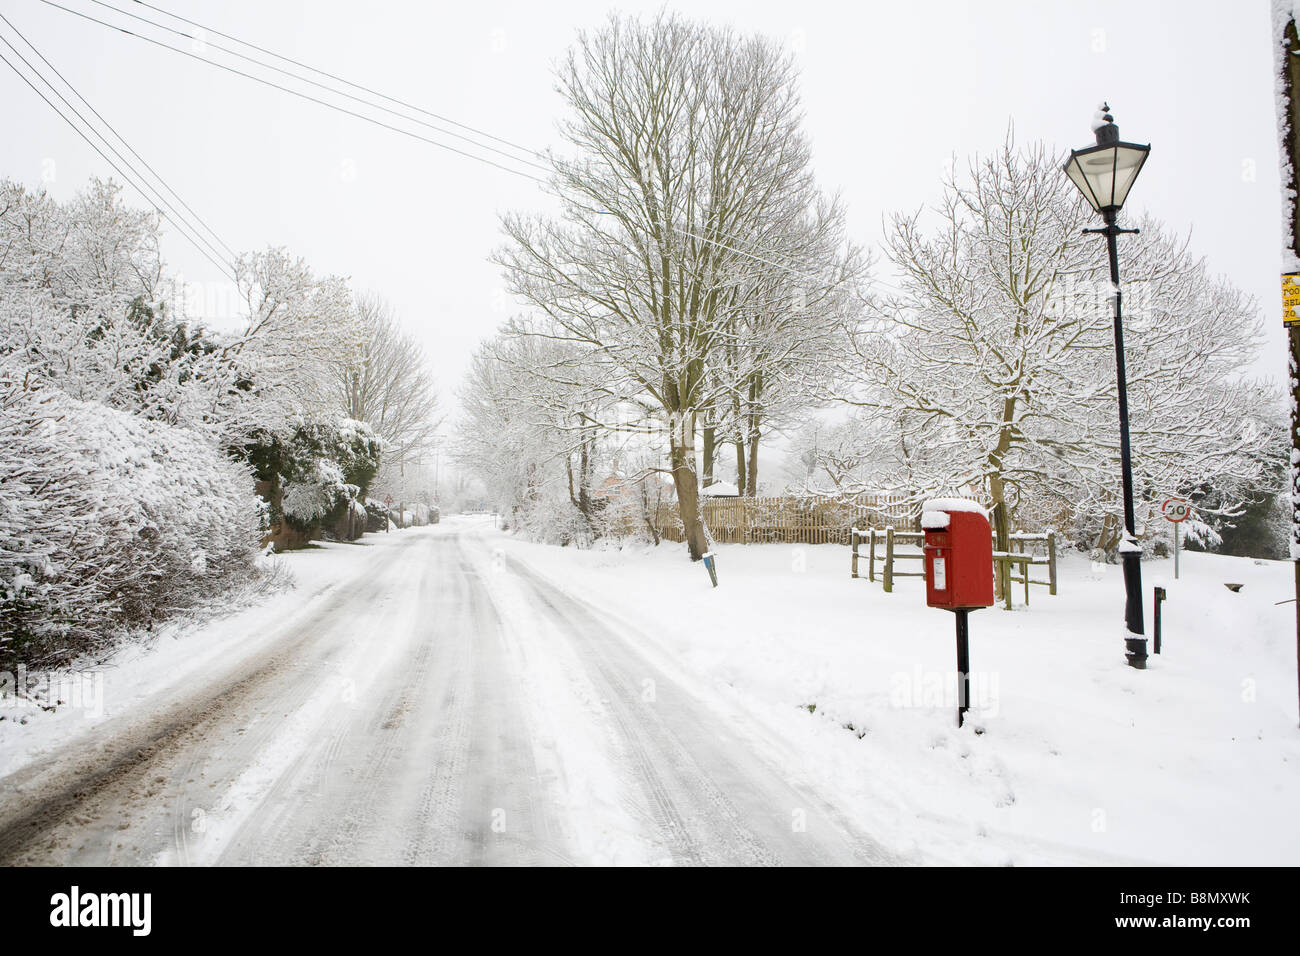 Royal Mail red post box and traditional style lamp post in the snow covered Buckinghamshire village of Askett. - Stock Image